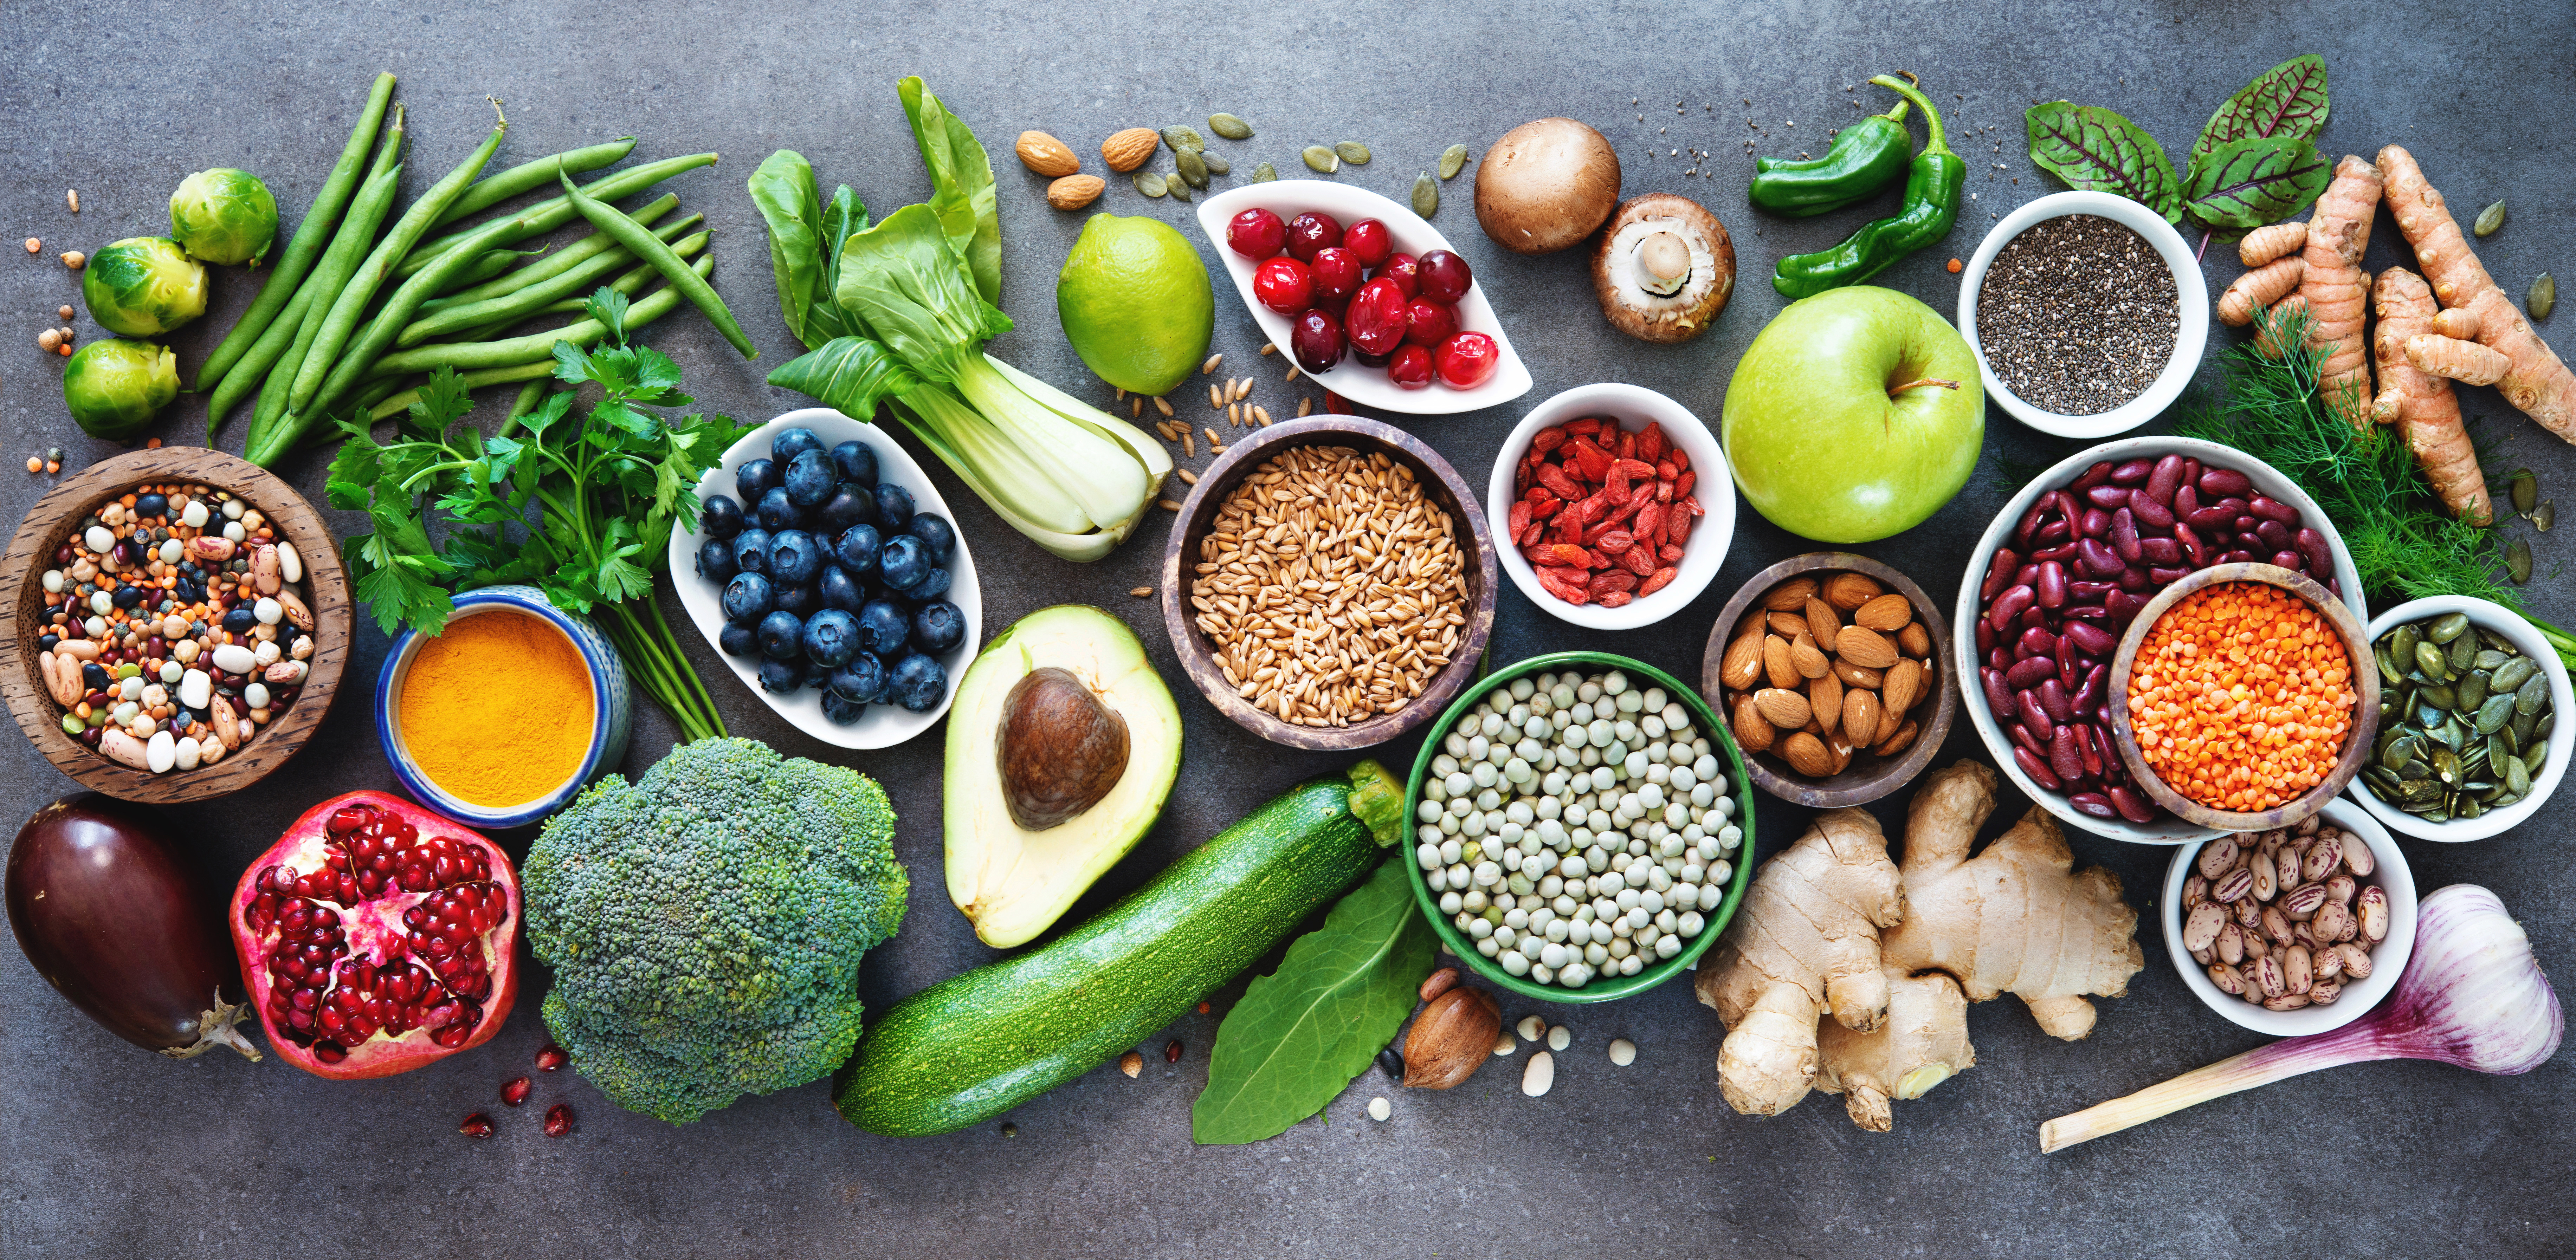 Healthy food selection with fruits, vegetables, seeds, superfood,